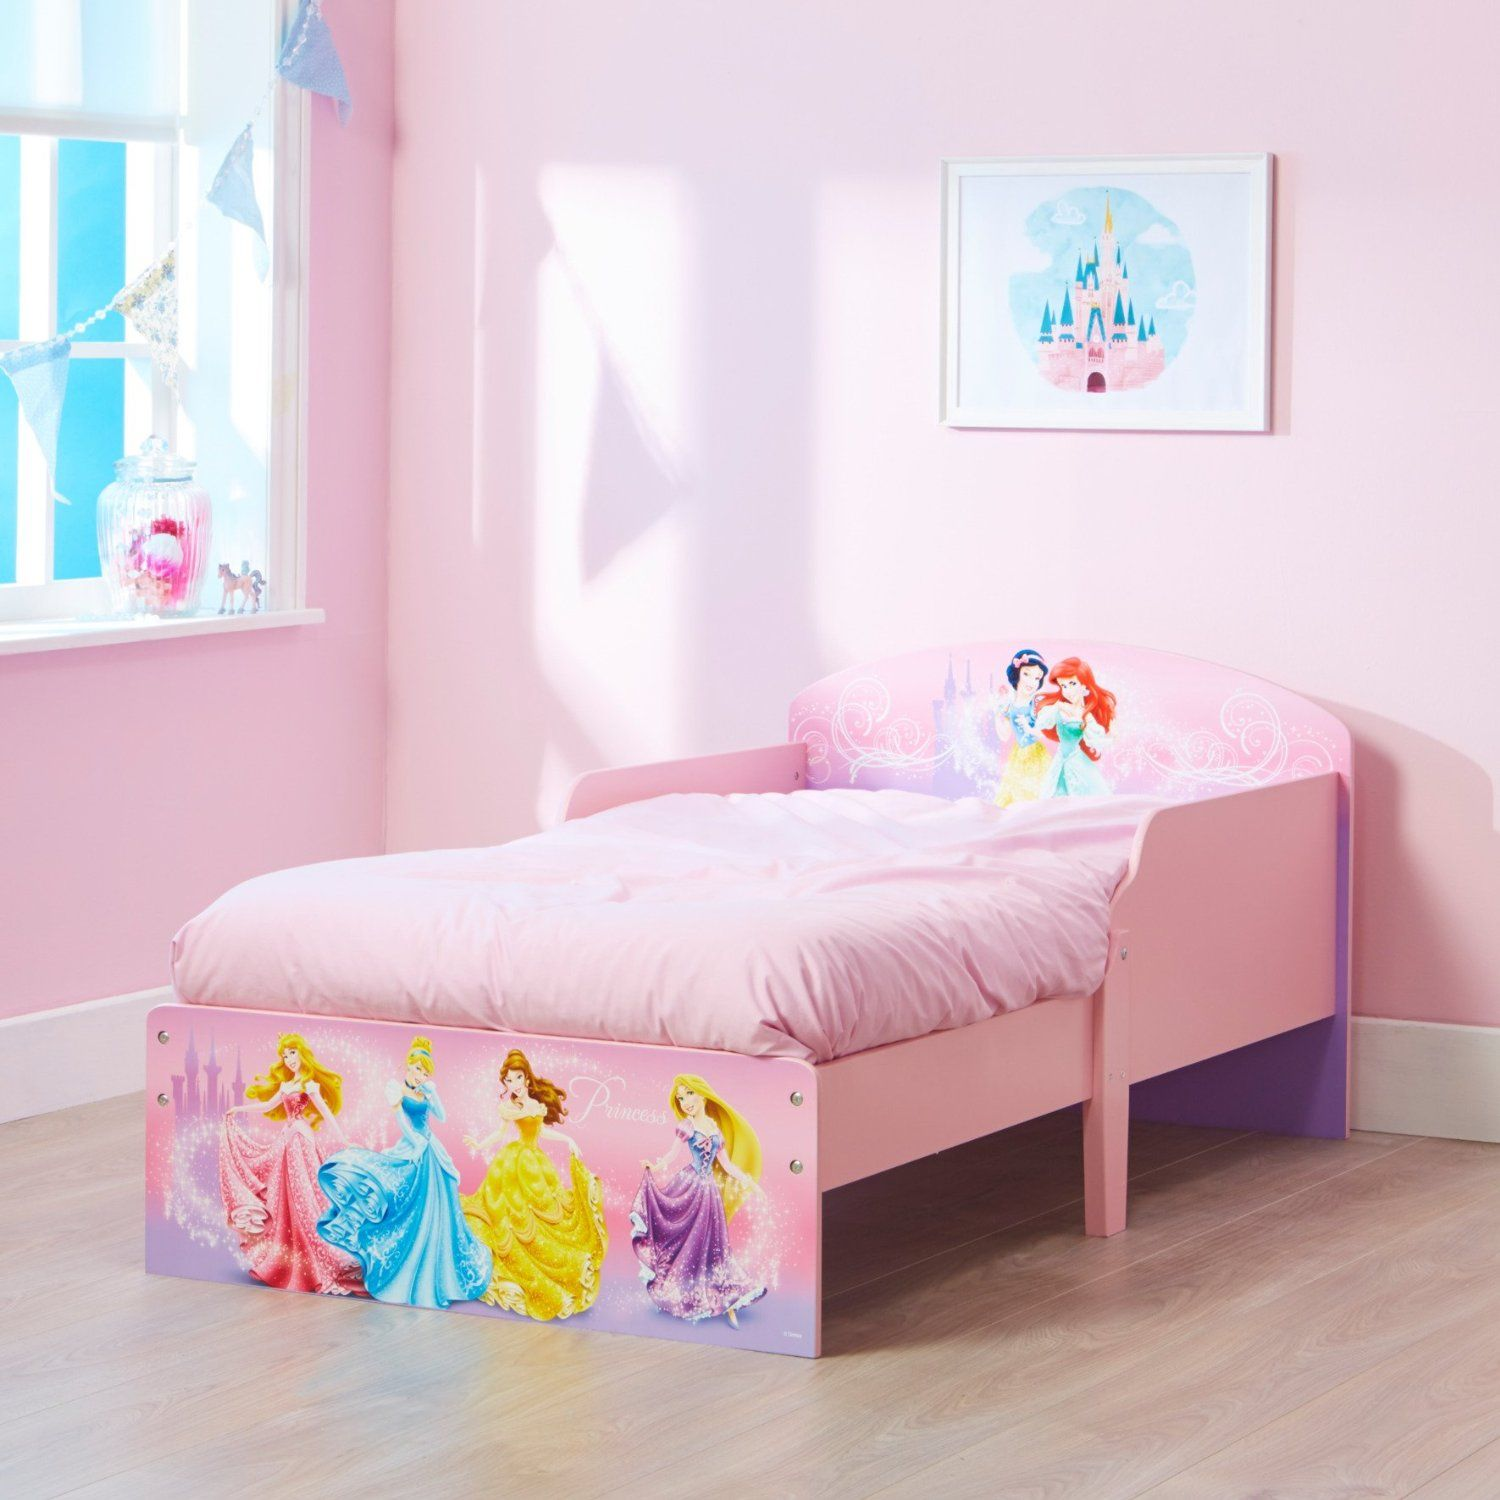 Disney Princess Toddler Bed By Hellohome Amazon Co Uk Kitchen Home Princess Toddler Bed Toddler Bed Wooden Toddler Bed